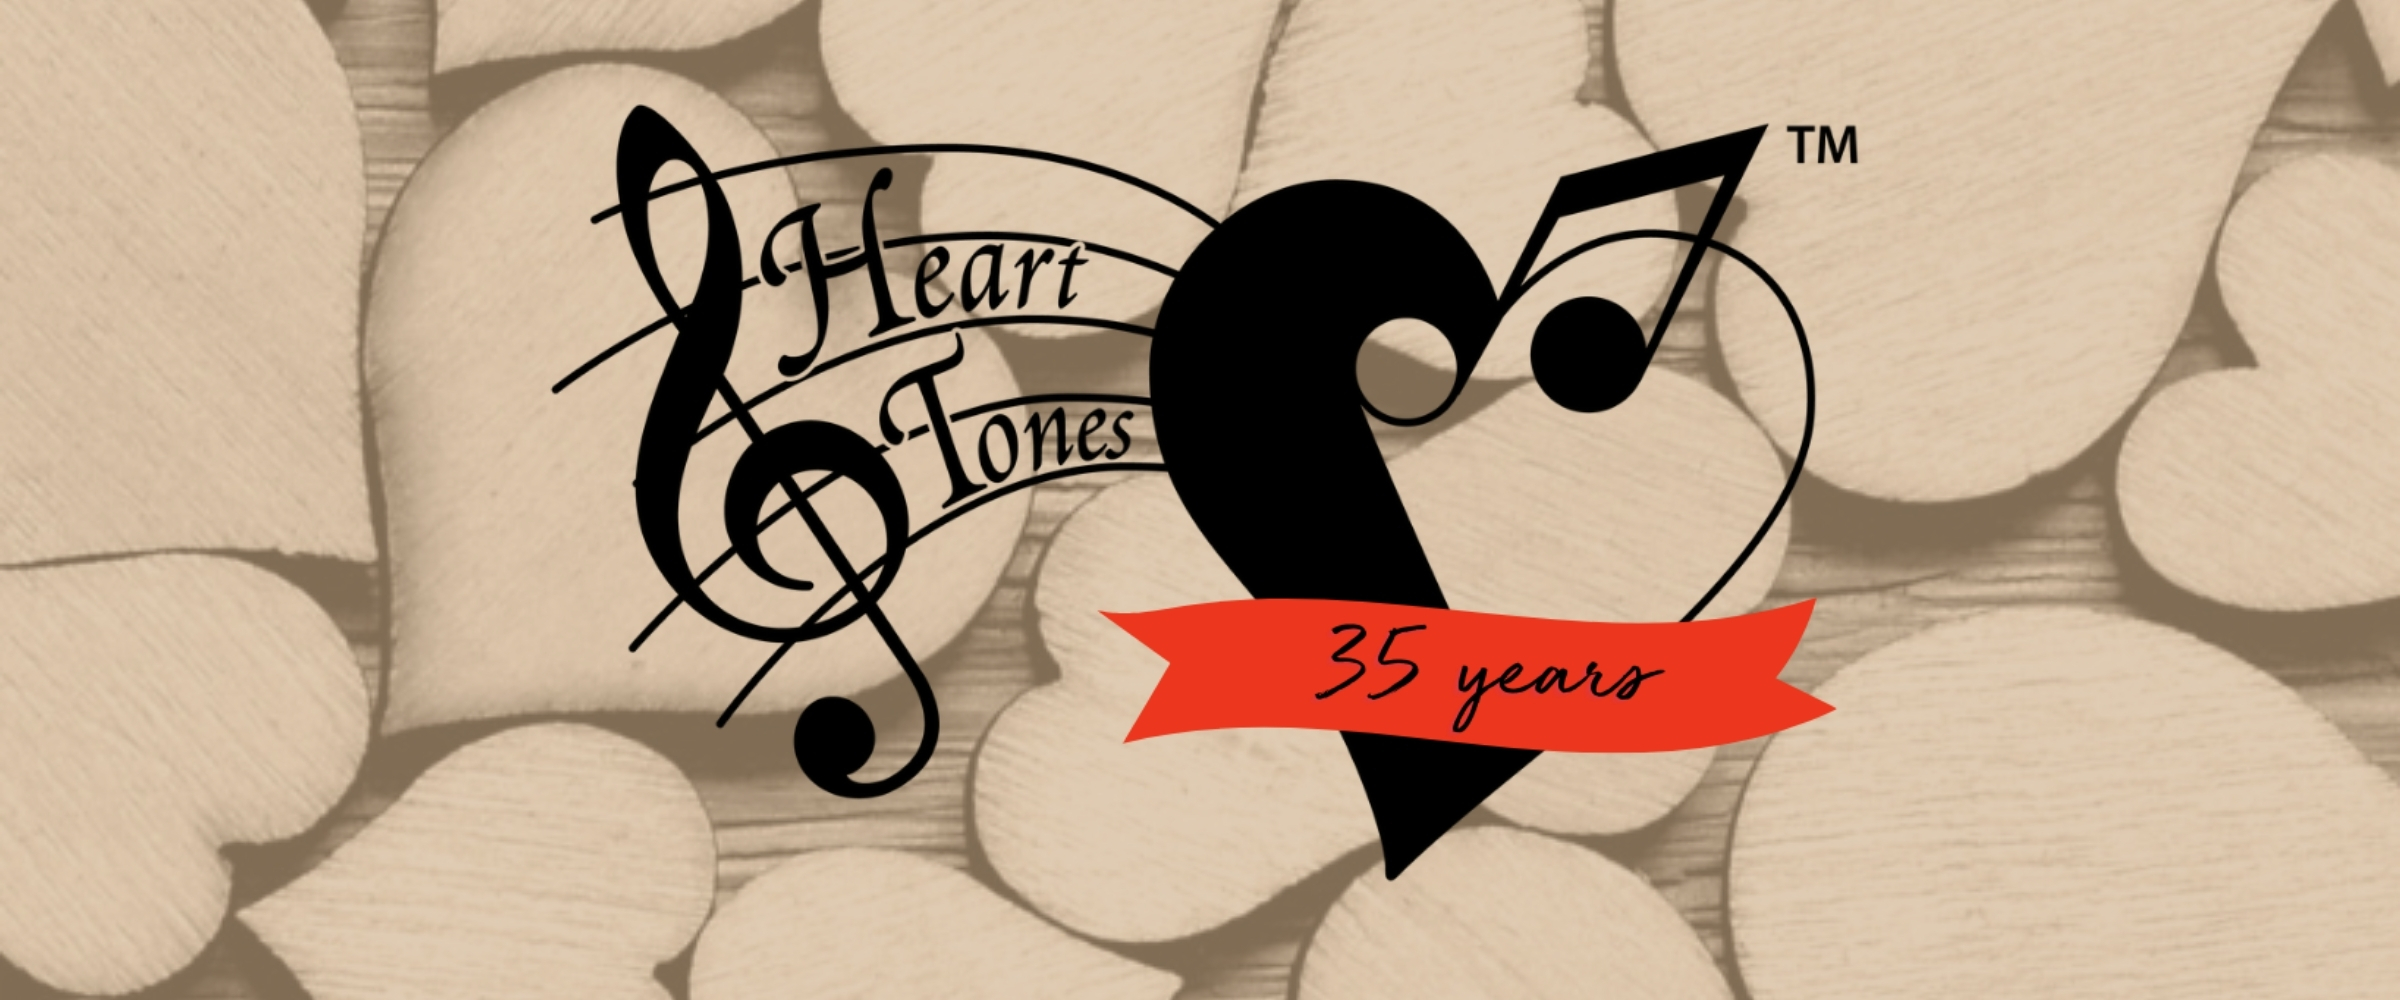 heart tones 35th anniversary home page banner